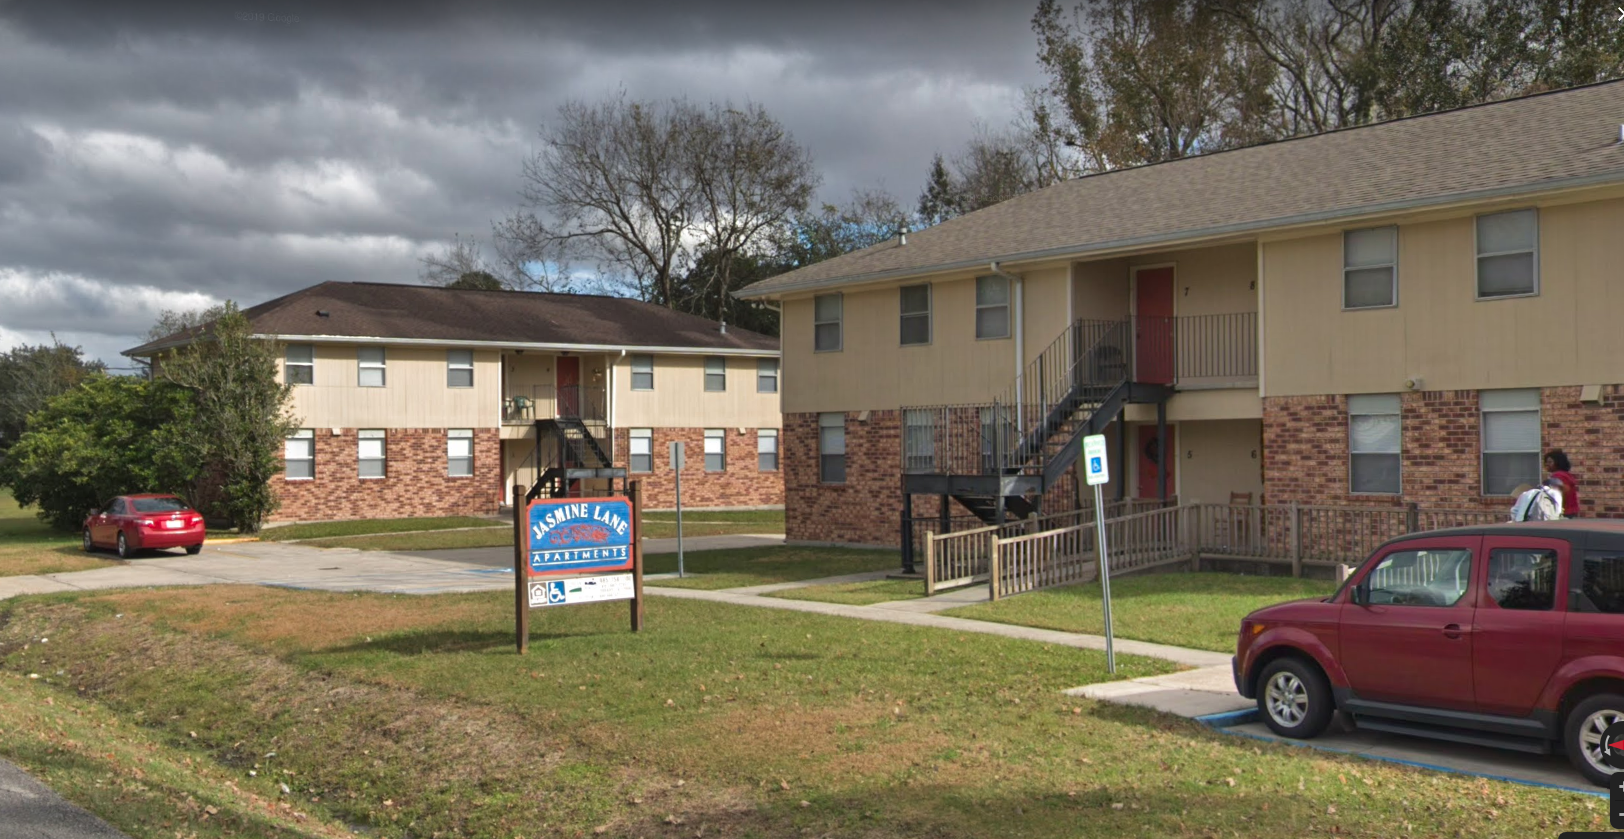 Image of Jasmine Lane Apartments in Paradis, Louisiana